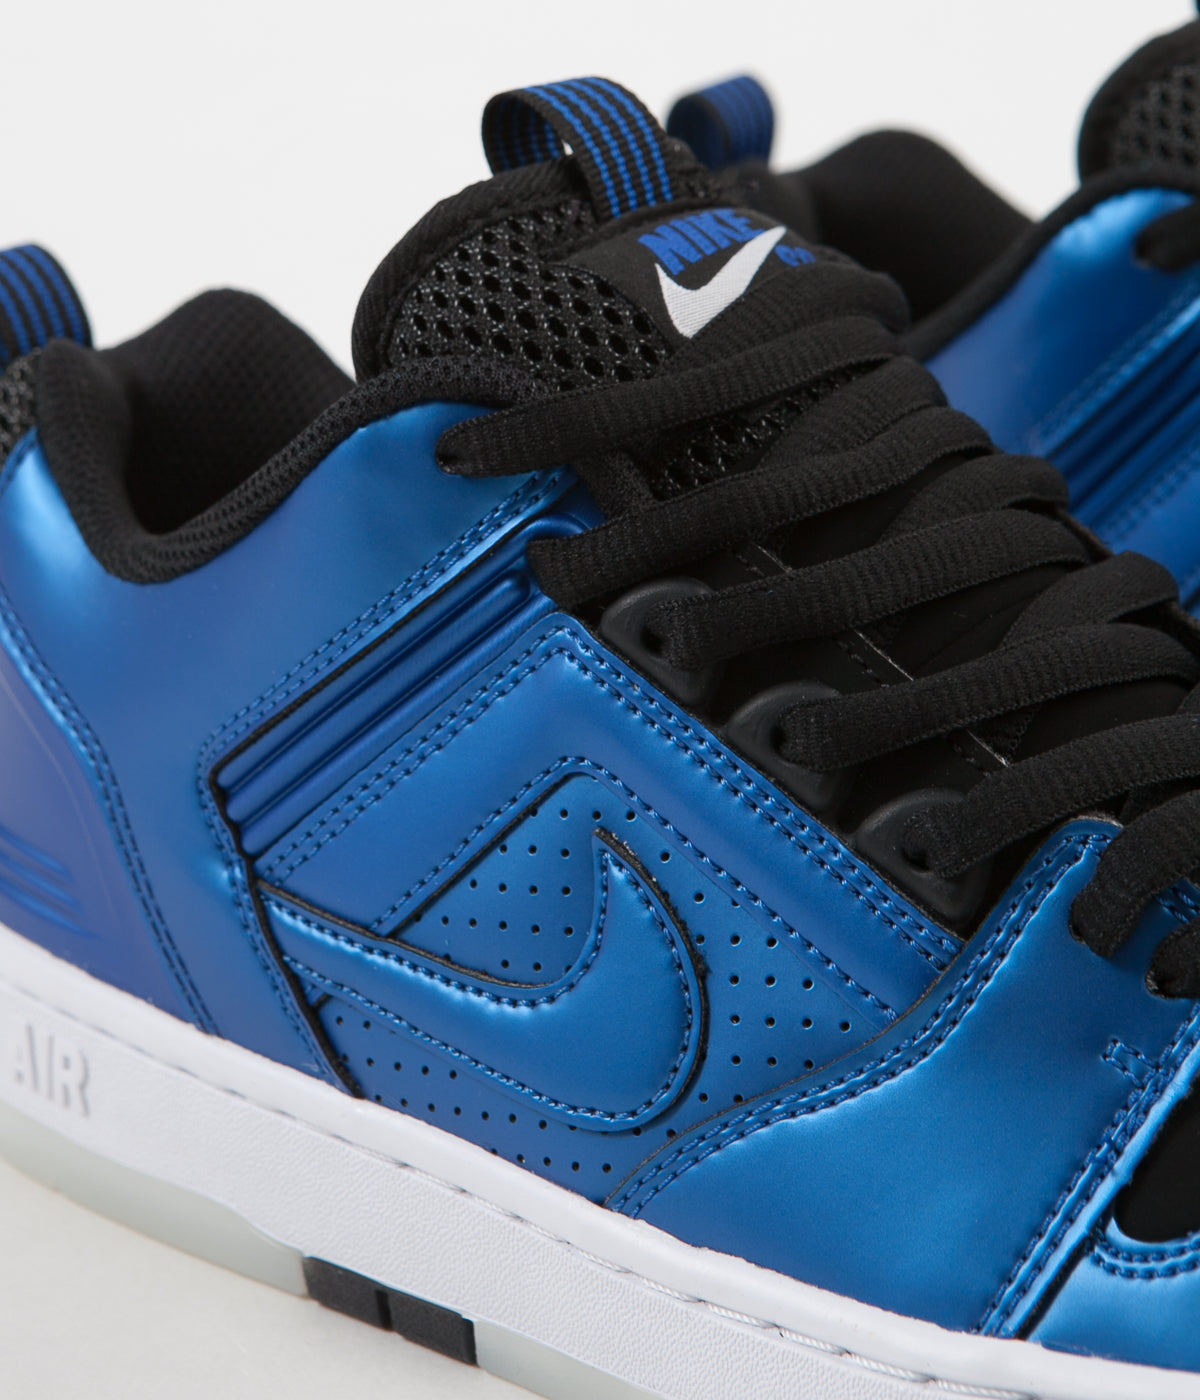 another chance sneakers authorized site Nike SB Air Force II Low Shoes - Intl Blue / Intl Blue ...